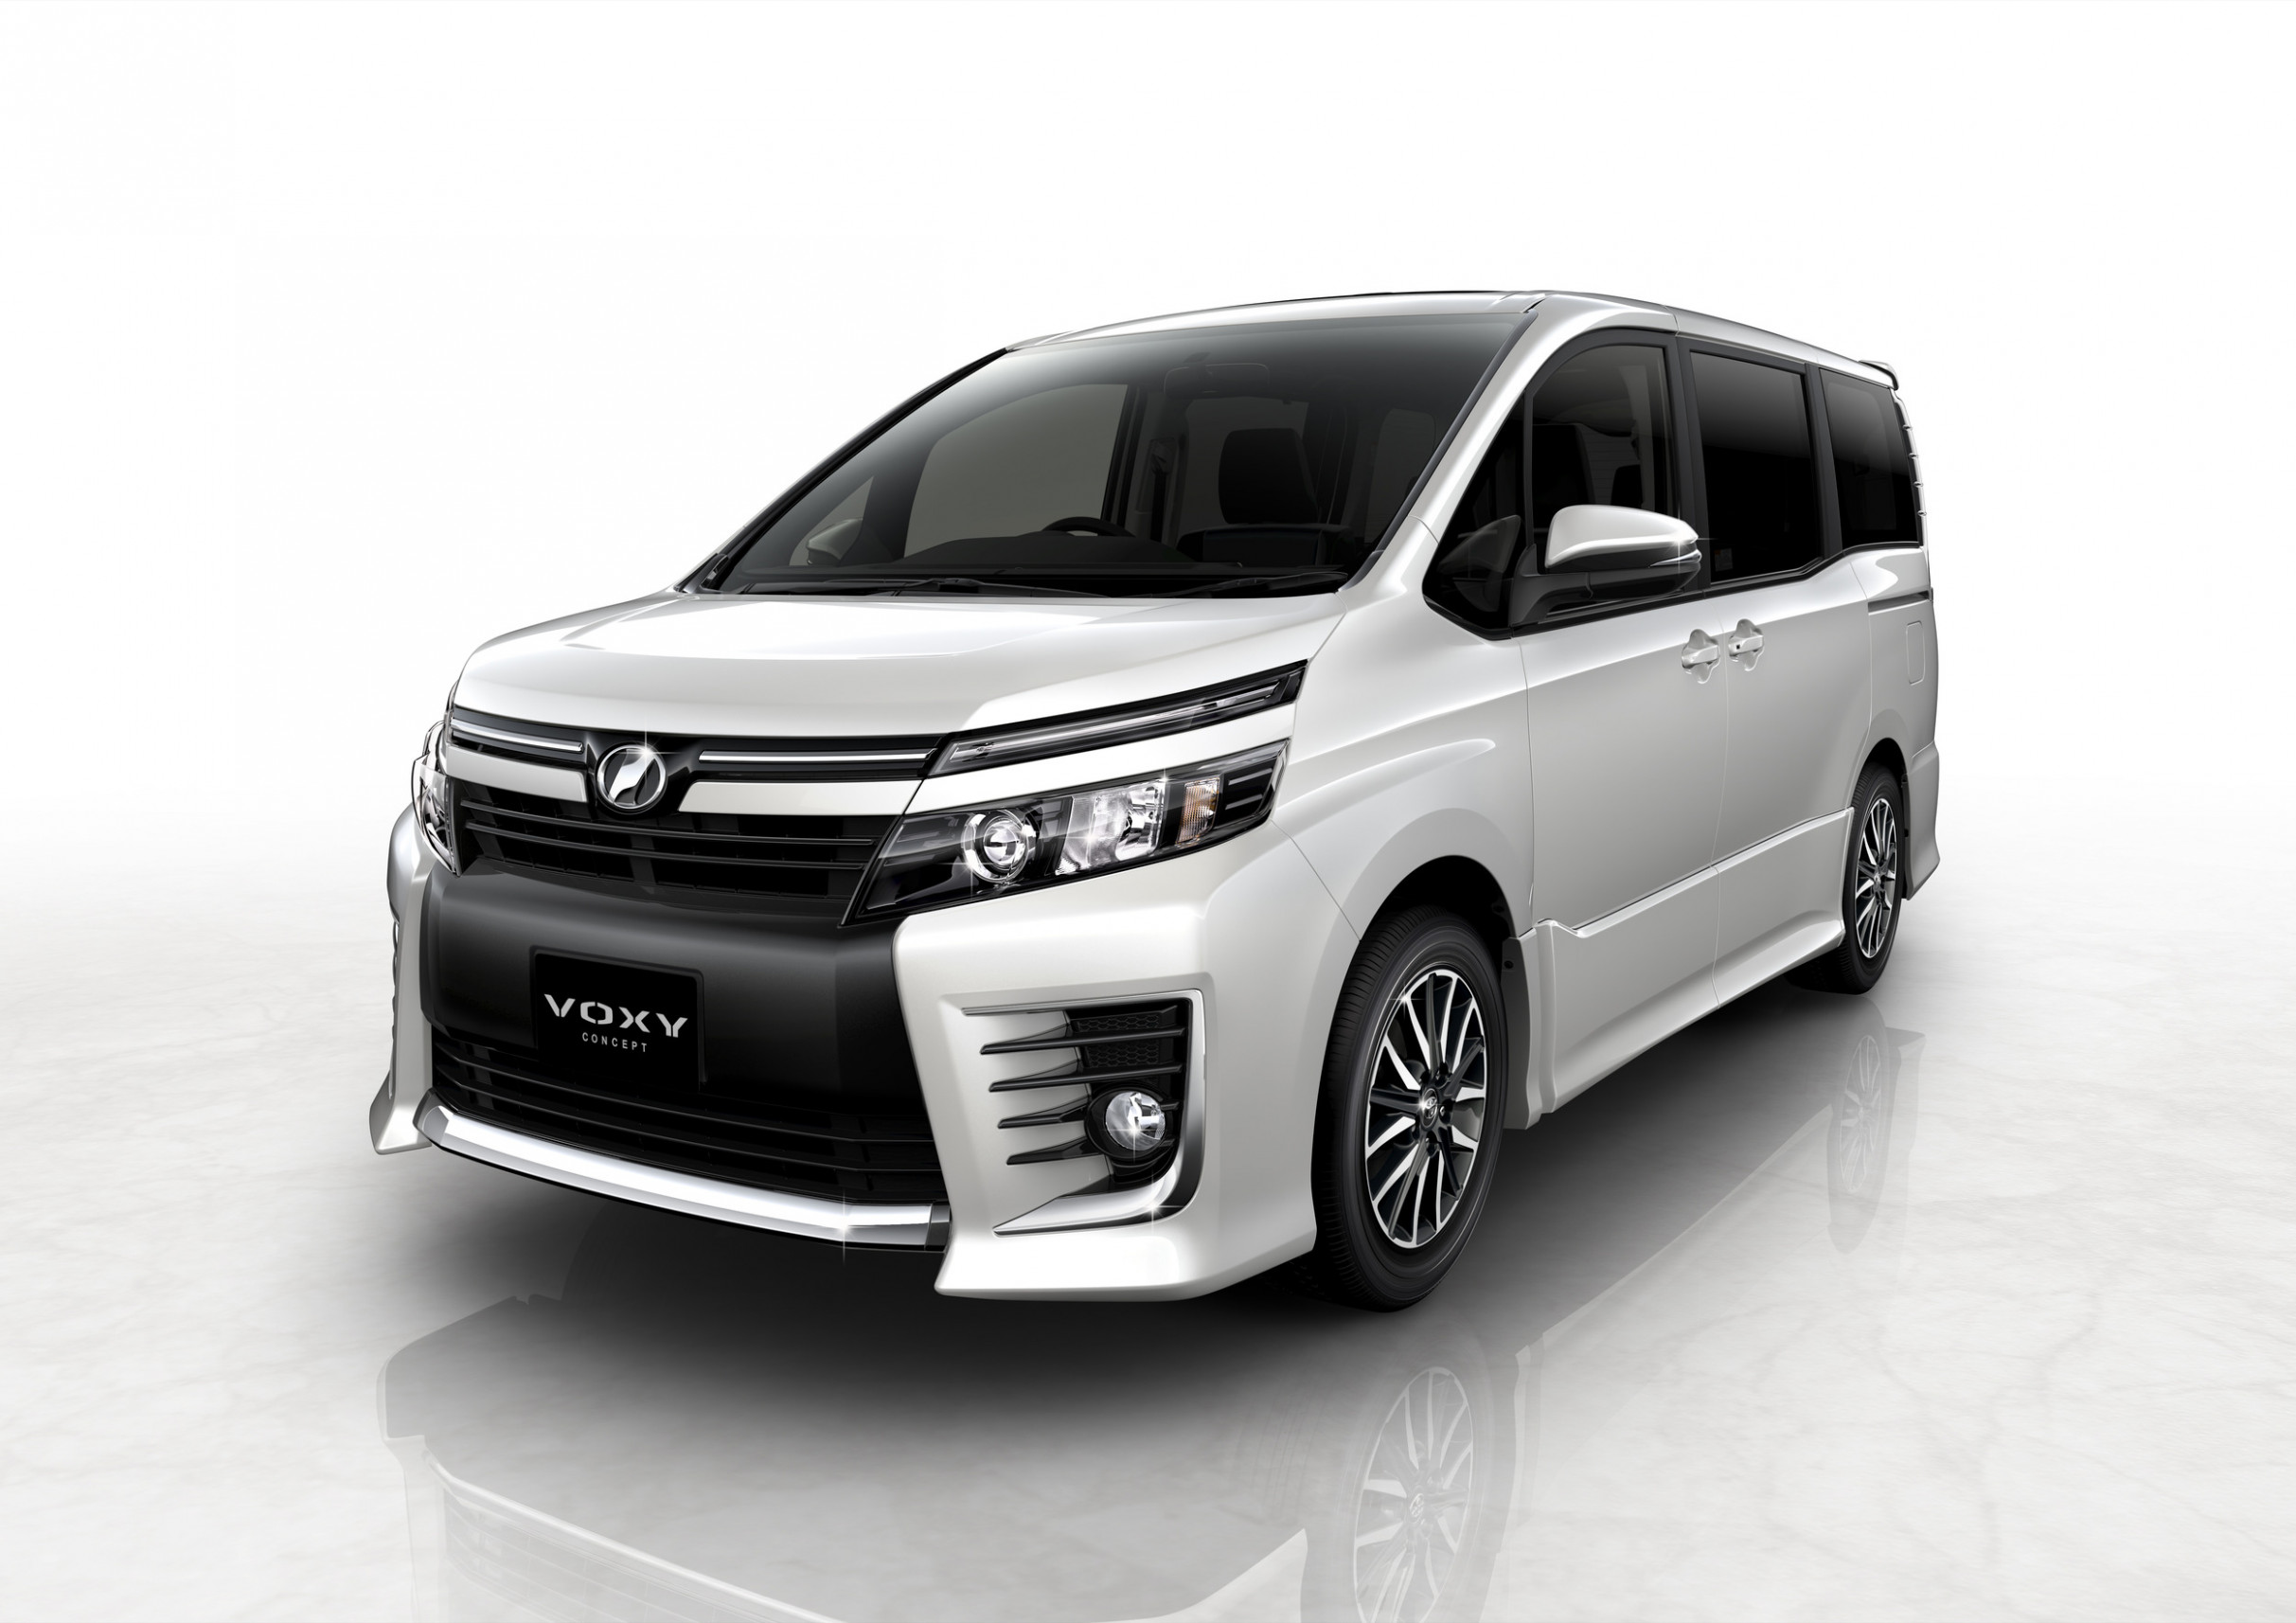 Redesign and Review Toyota Voxy 2022